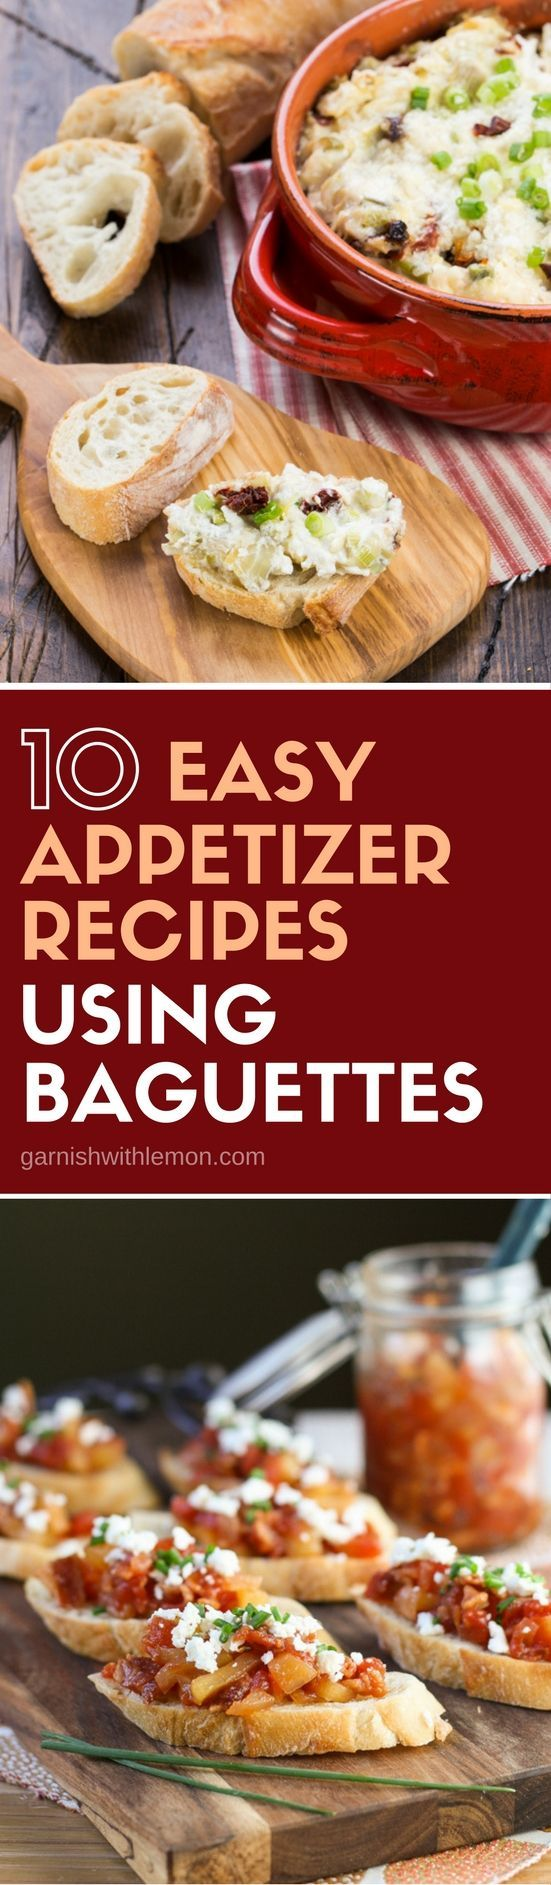 Need an appetizer for your next party? Grab a baguette at the store and whip up any one of these 10 Easy Appetizer Recipes using Baguettes!